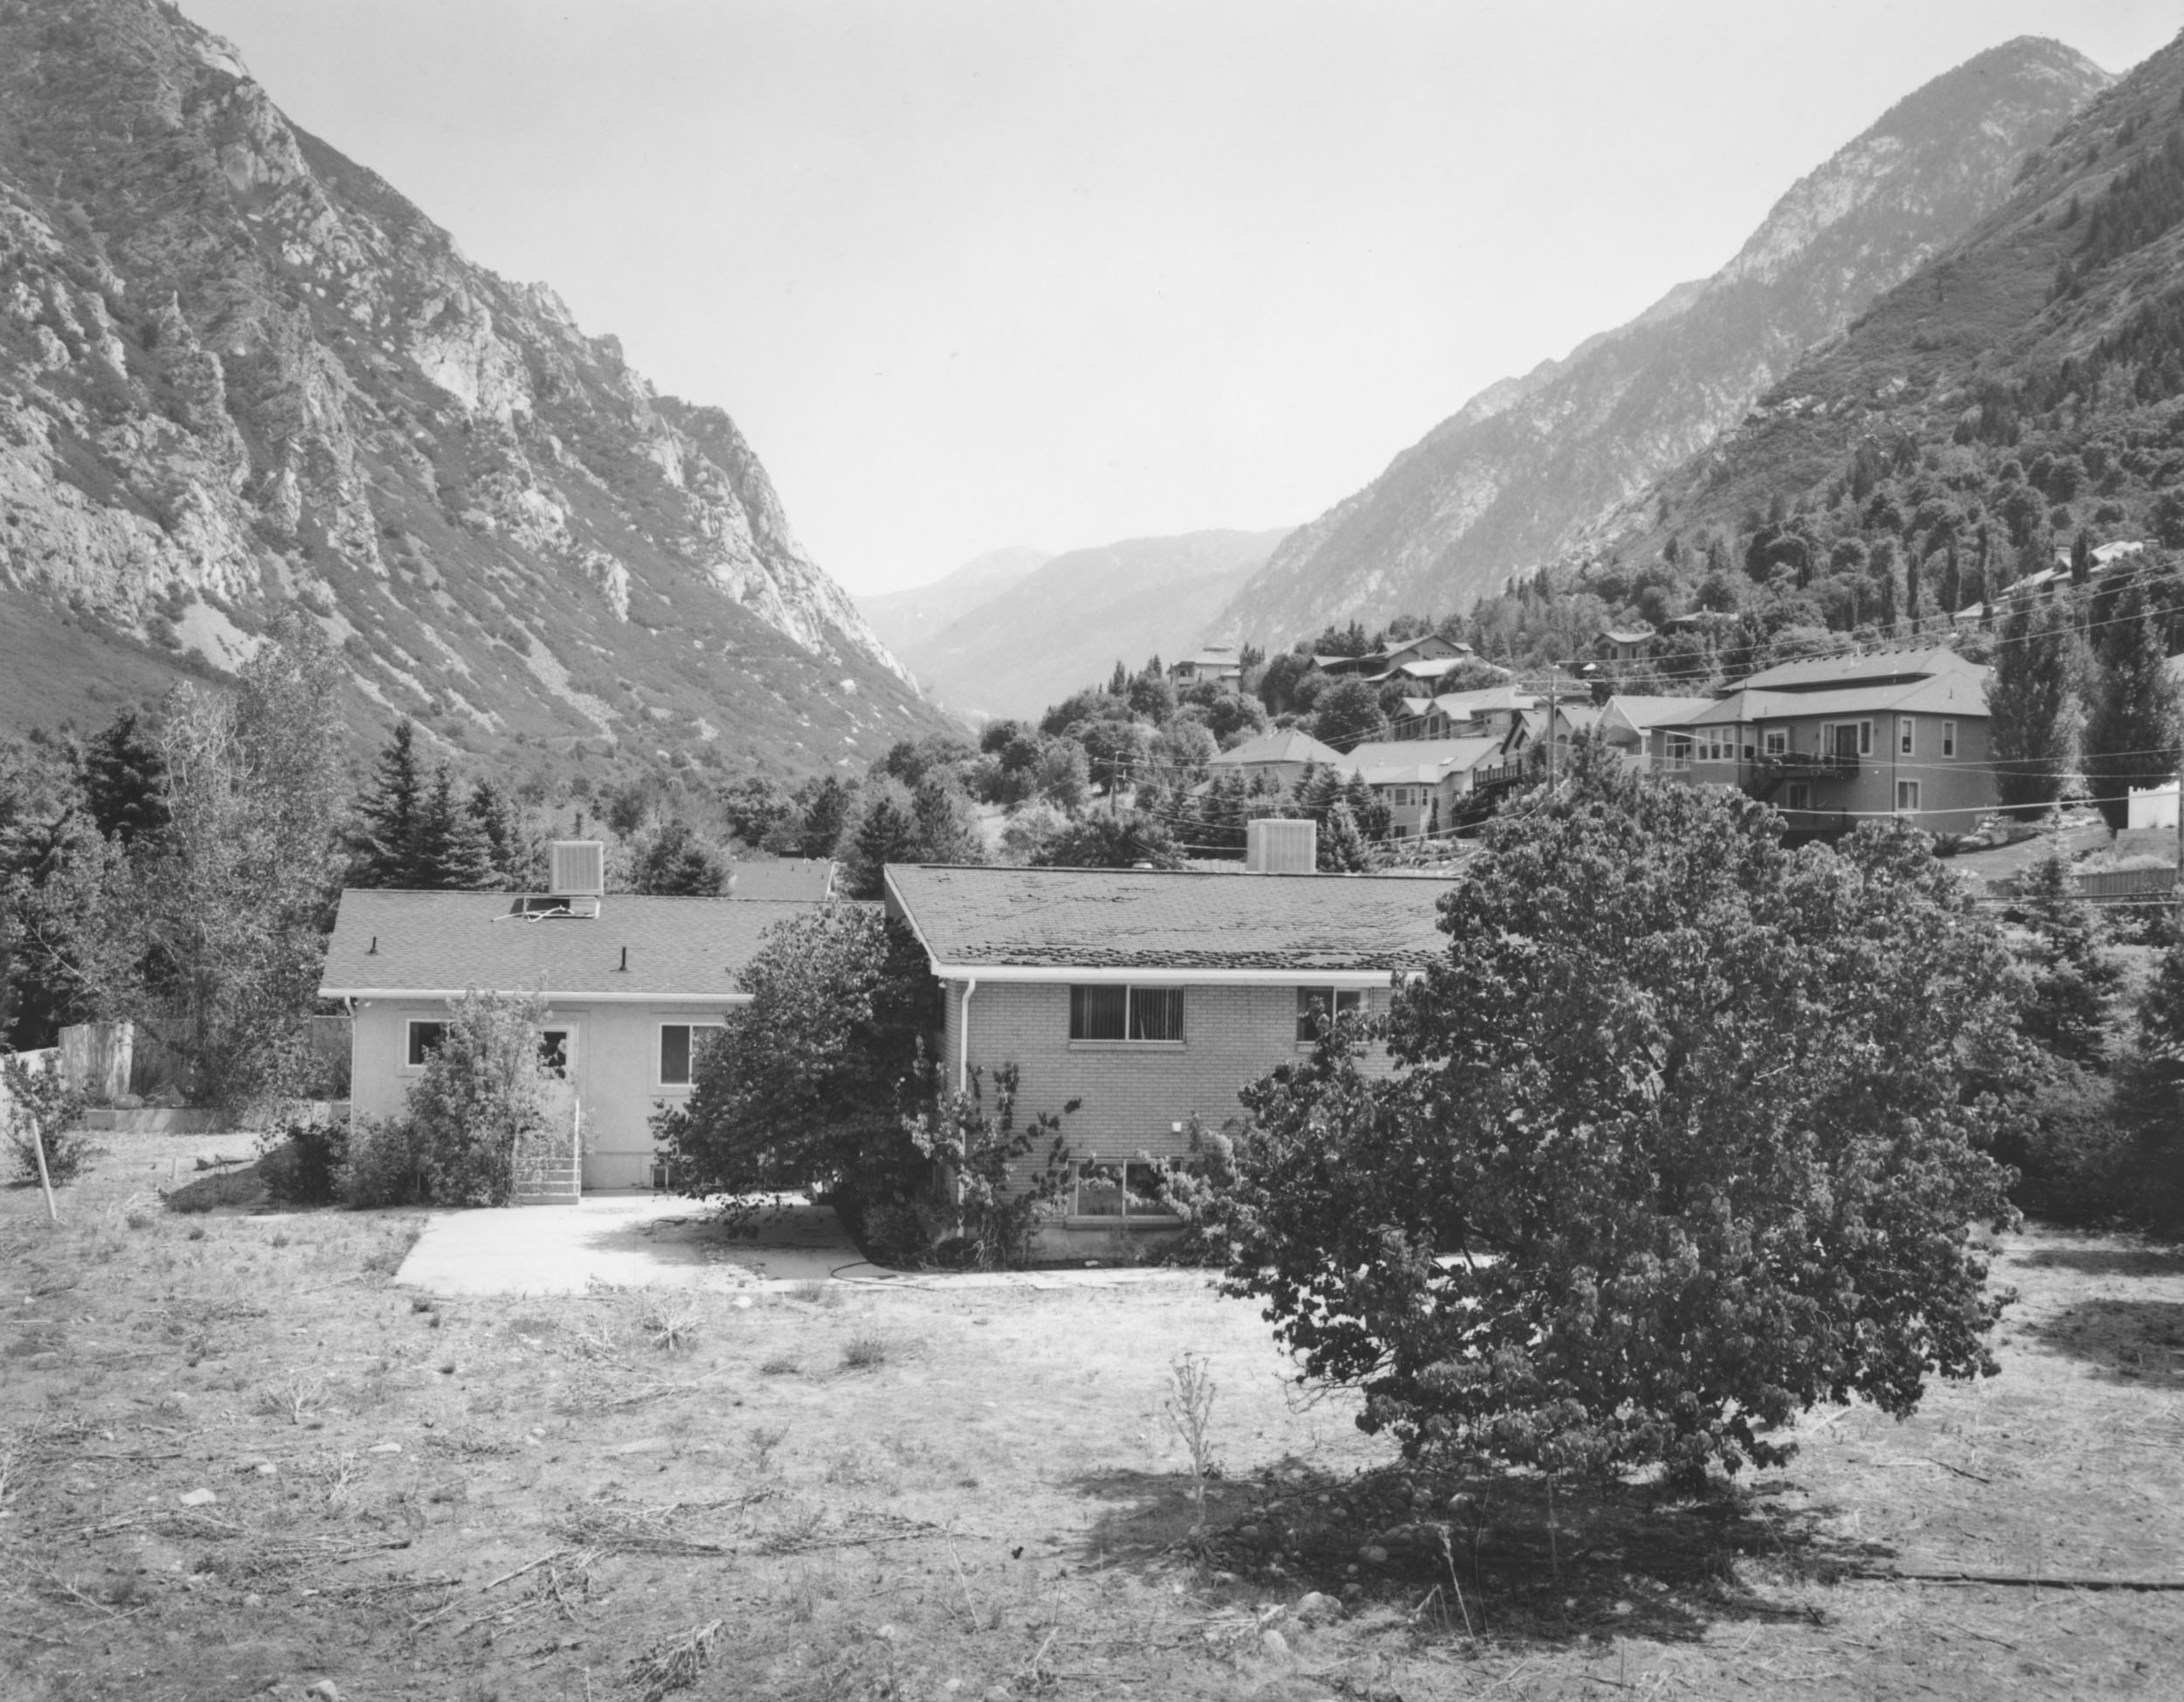 """The last remaining dwelling on former FLDS leader Rulon Jeffs' 4.5 acre compound sits at the mouth of Little Cottonwood Canyon. The compound included a school: Alta Academy. Rulon's son, Warren Jeffs, was the principal and a teacher at the school for 22 years. The academy's motto was, """"perfect obedience produces perfect faith.''"""